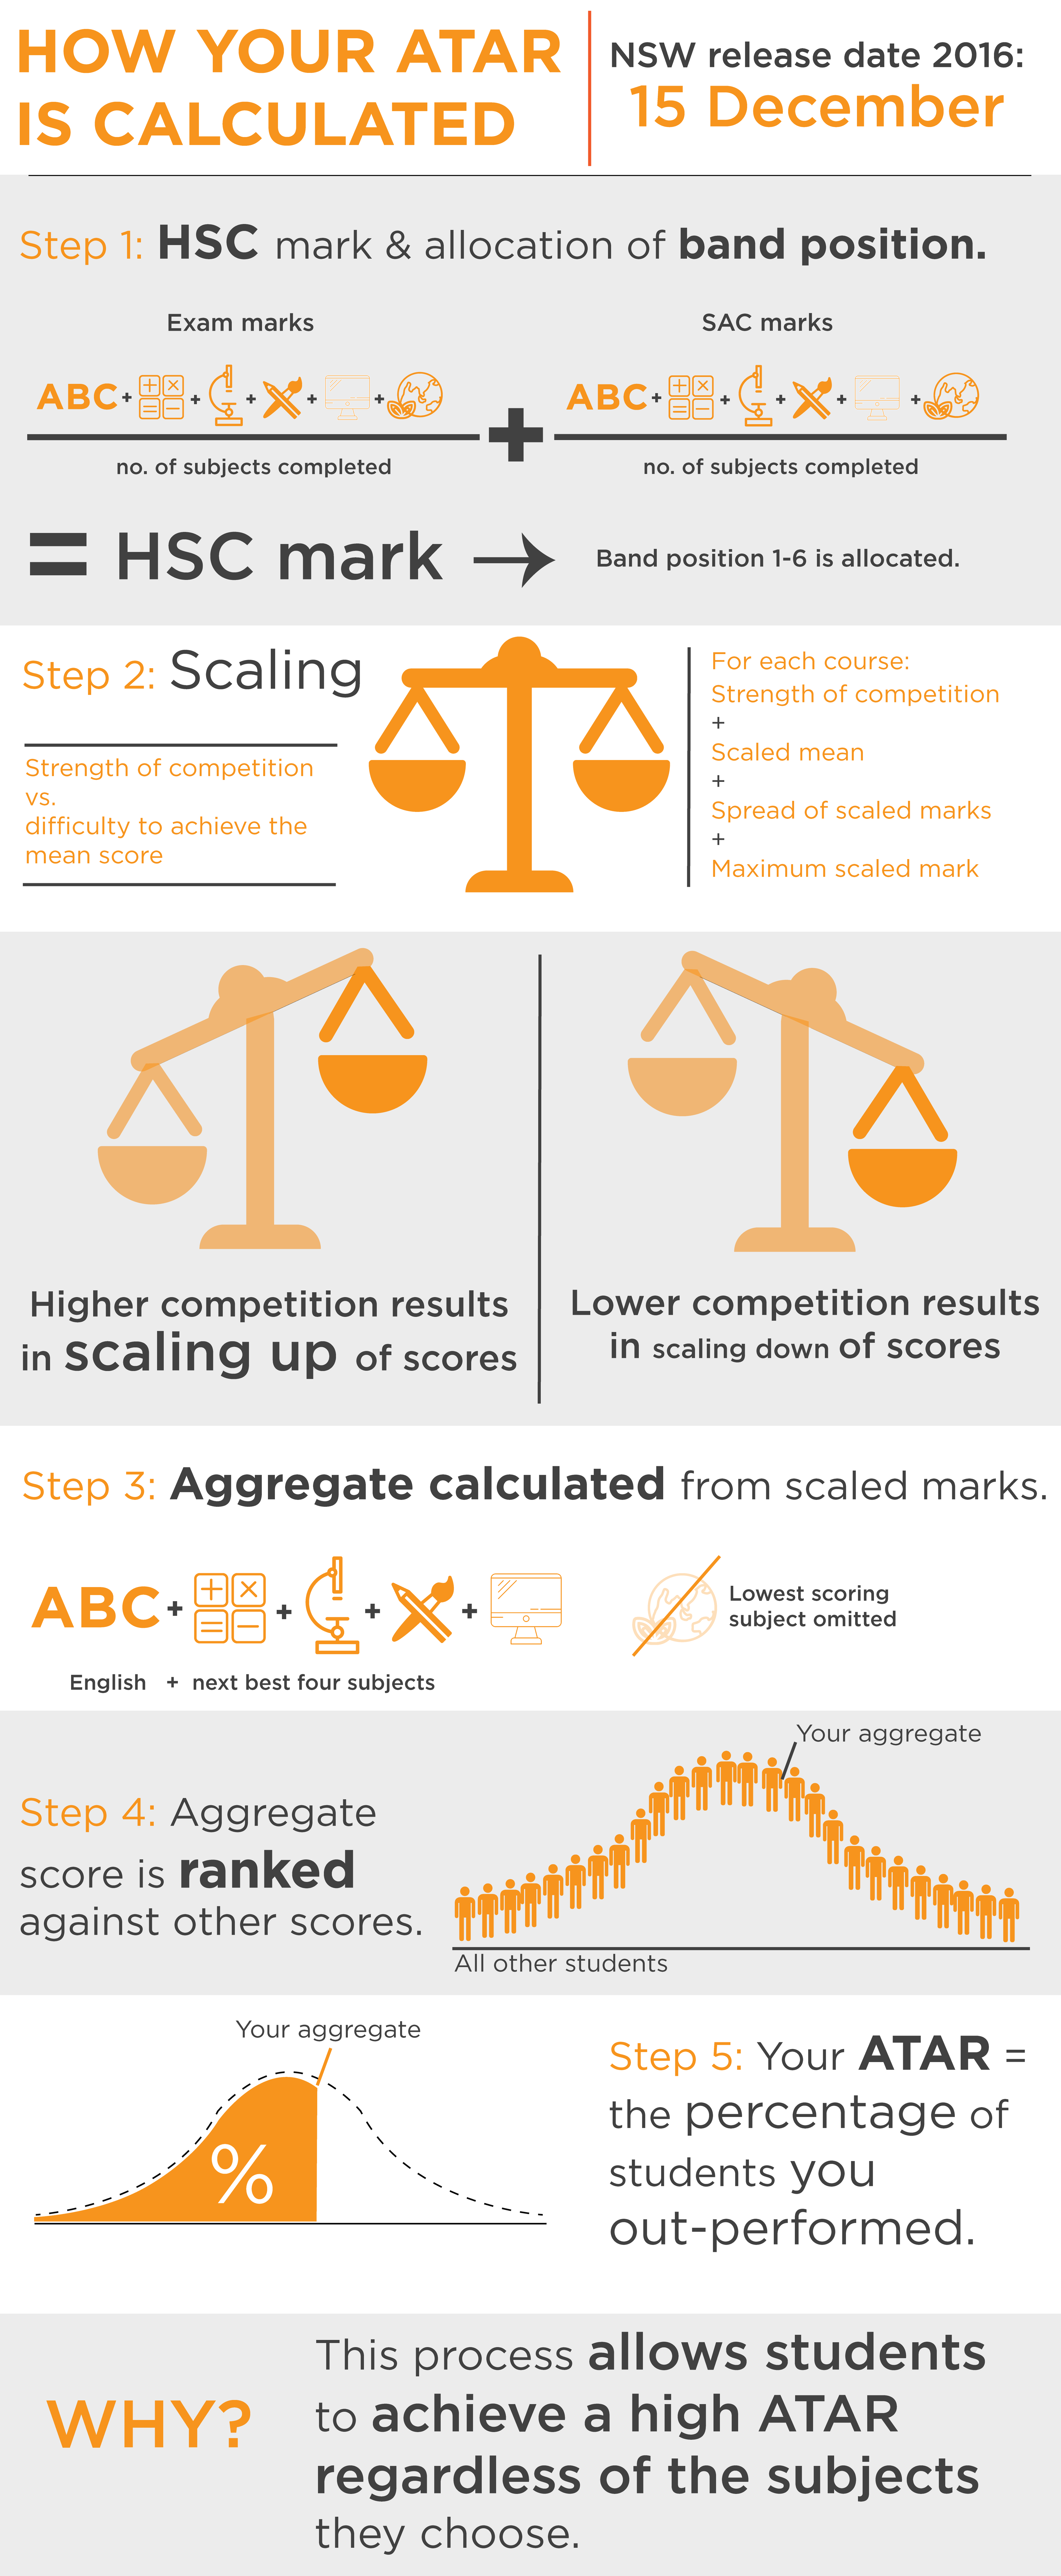 Ever wonder how the #ATAR is calculated? We take a look at New South Wales process #GoodSchools #ataresults #year12 #NSW